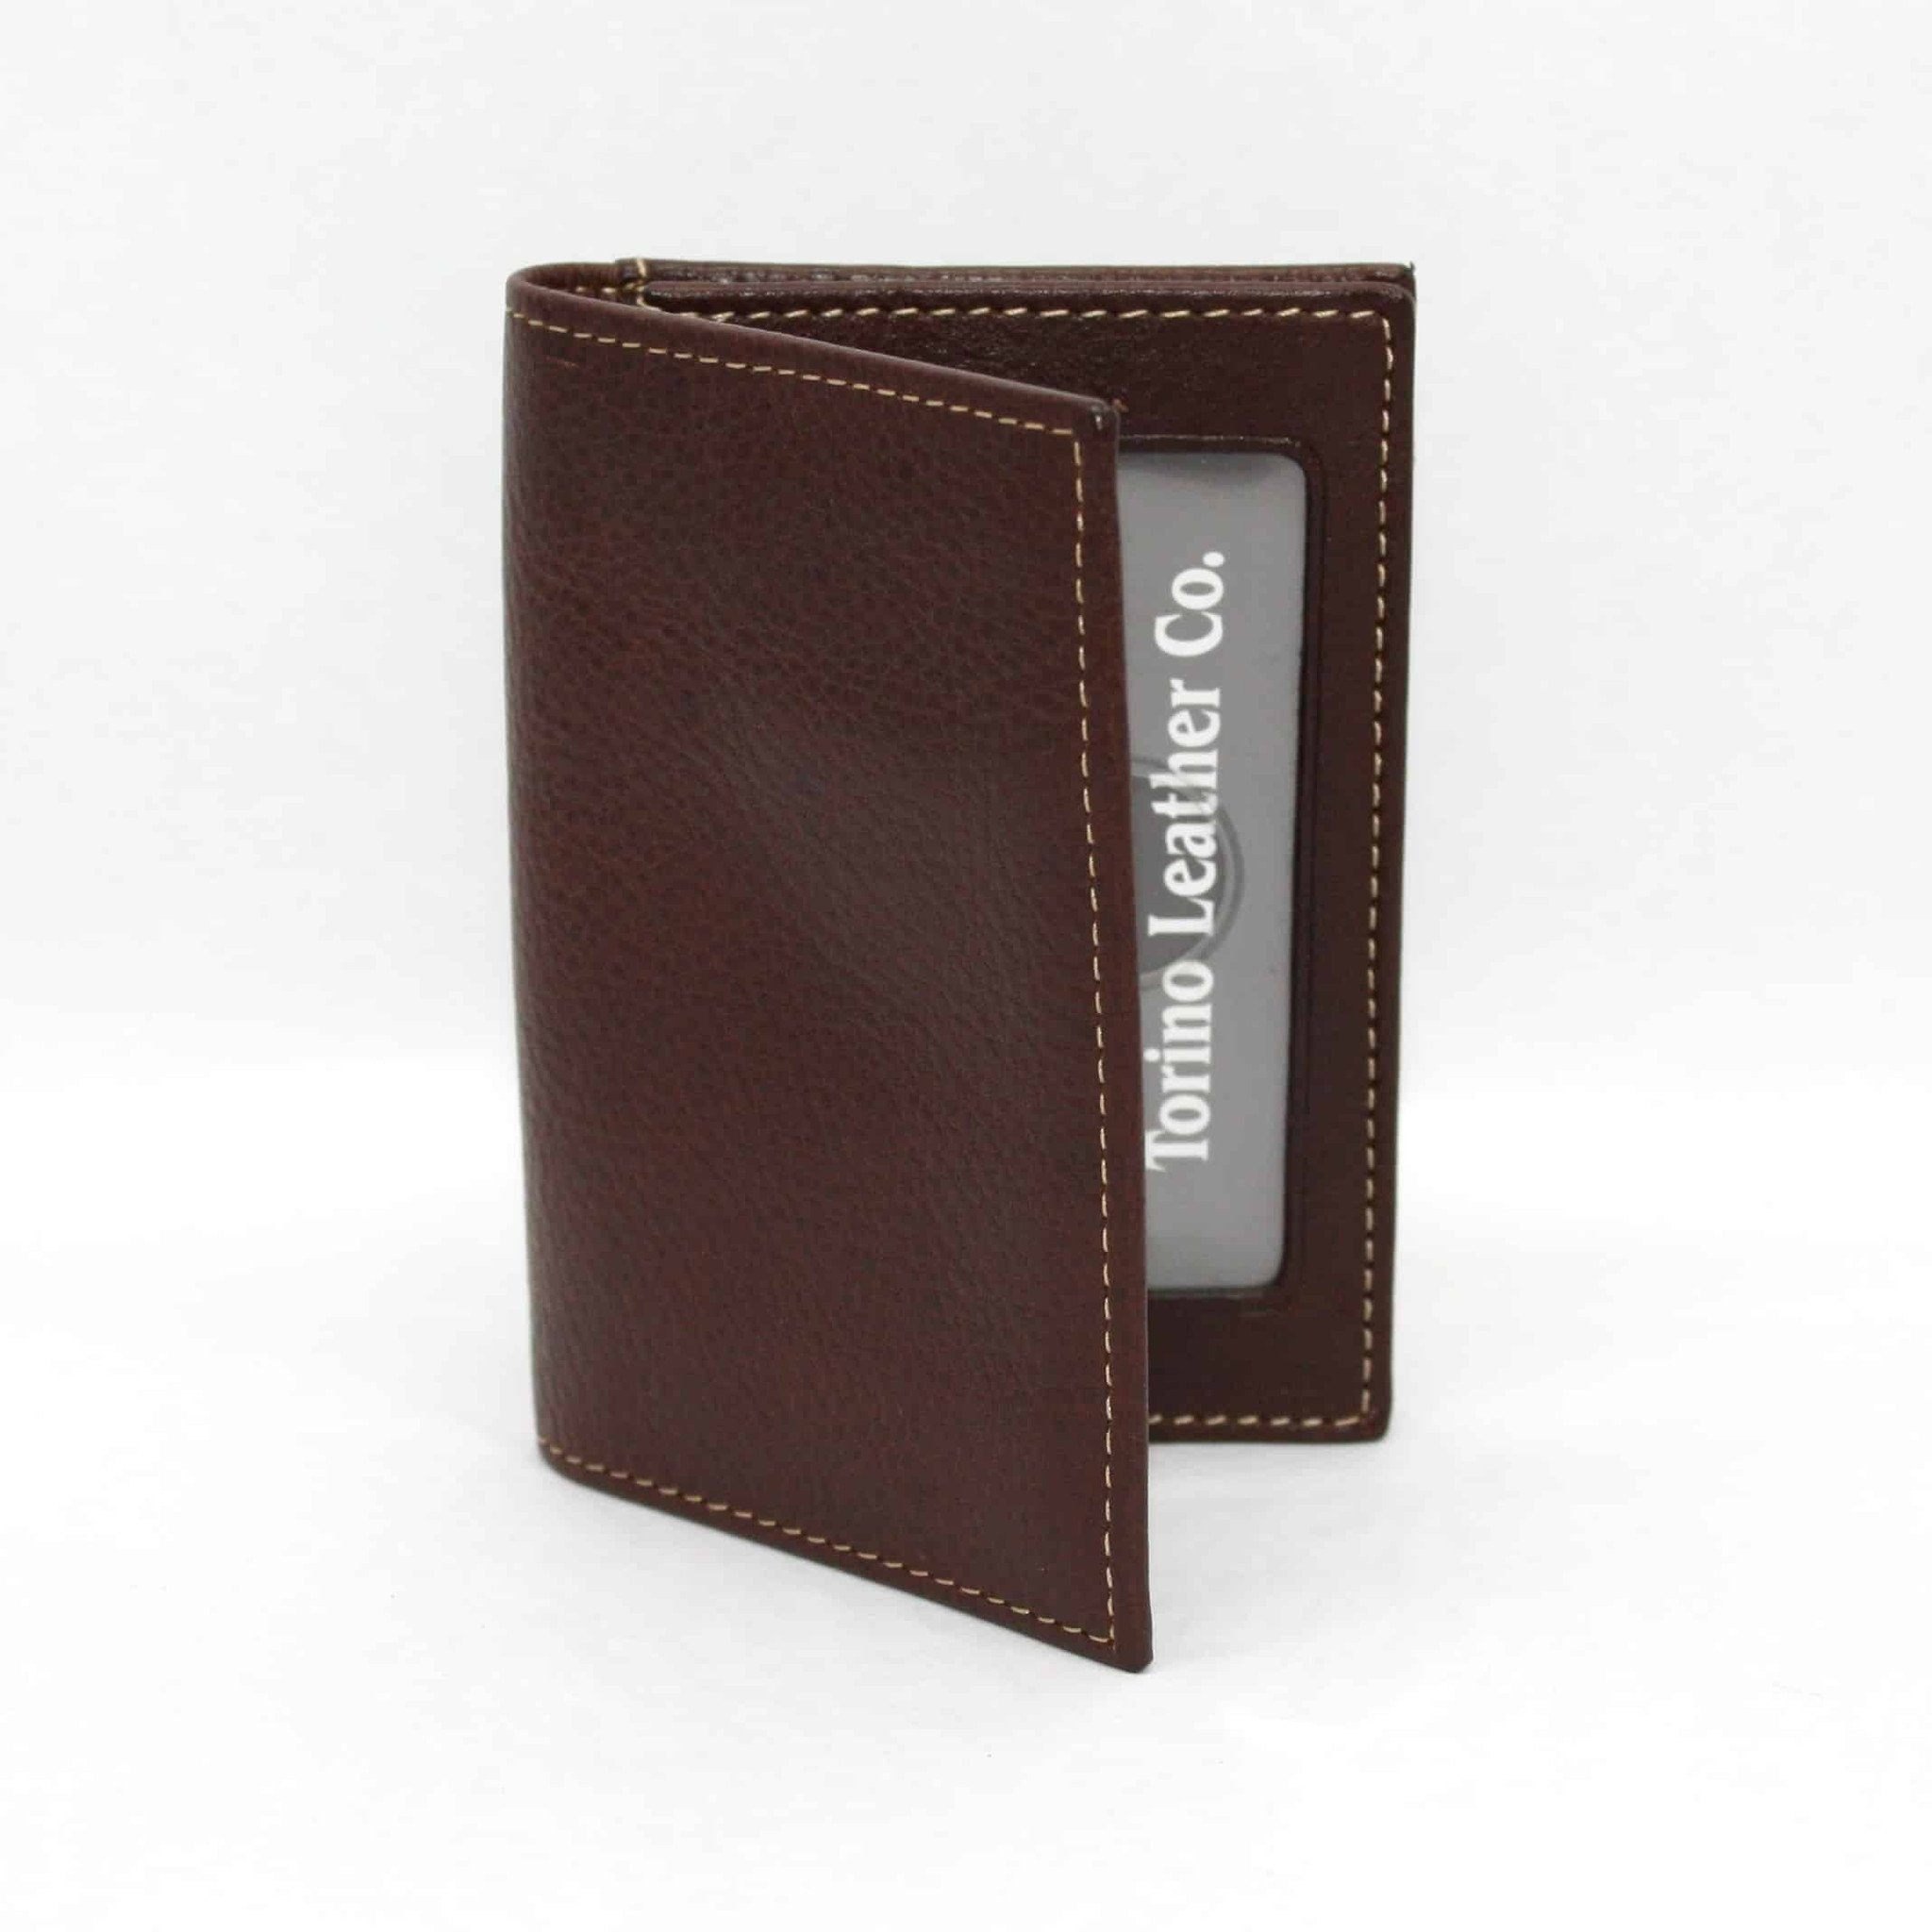 Tumbled Glove Leather Gusseted Card Case - Brown,WALLETS,GentRow.com, | GentRow.com